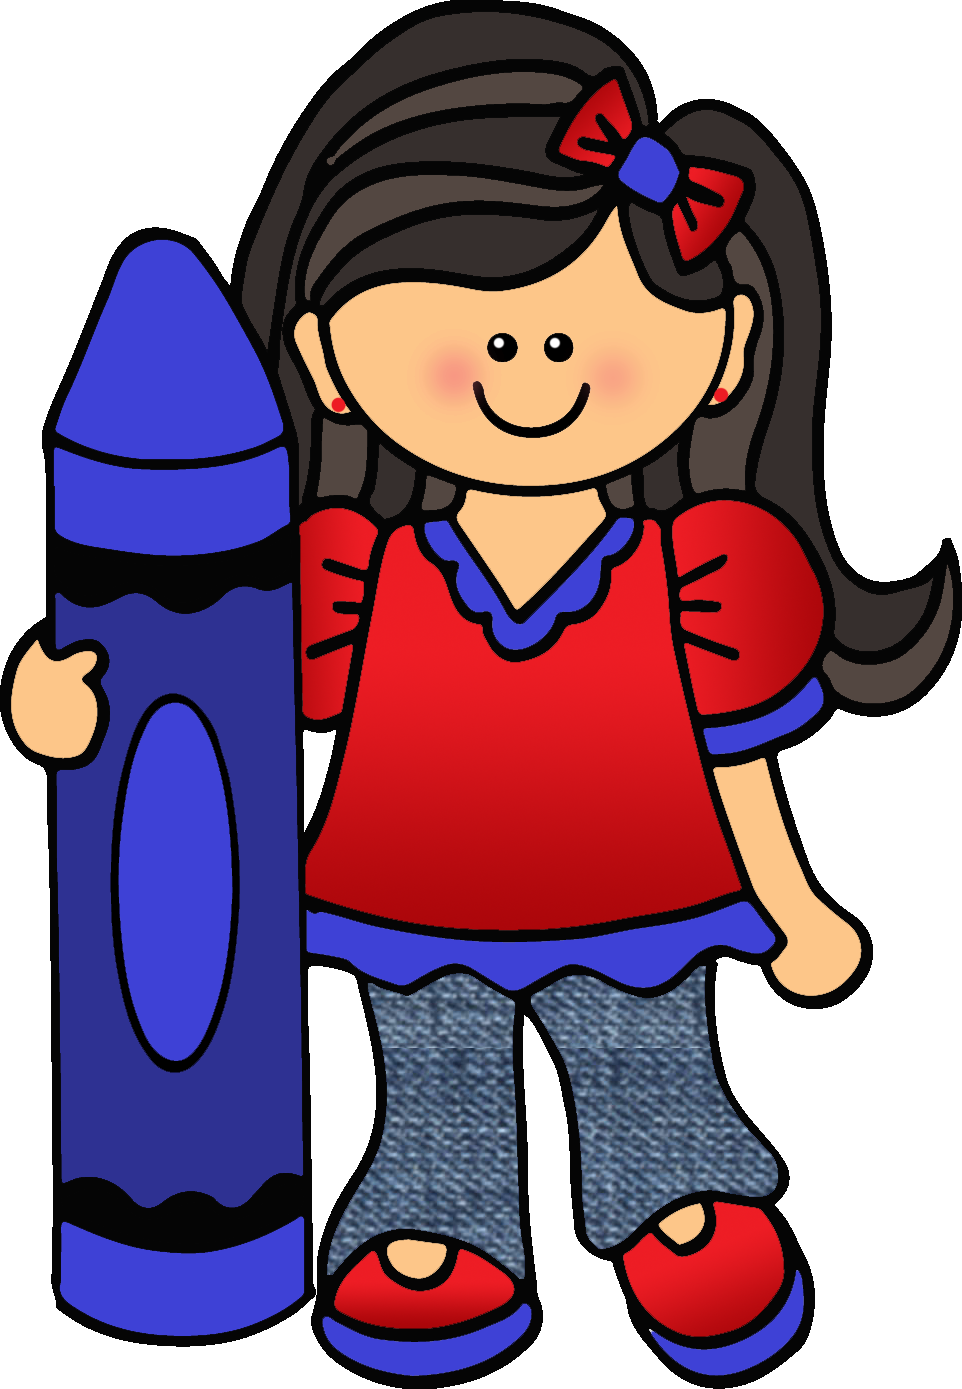 School playground clipart clipart royalty free library ✿**✿*AL COLE*✿**✿* | colors | Pinterest clipart royalty free library